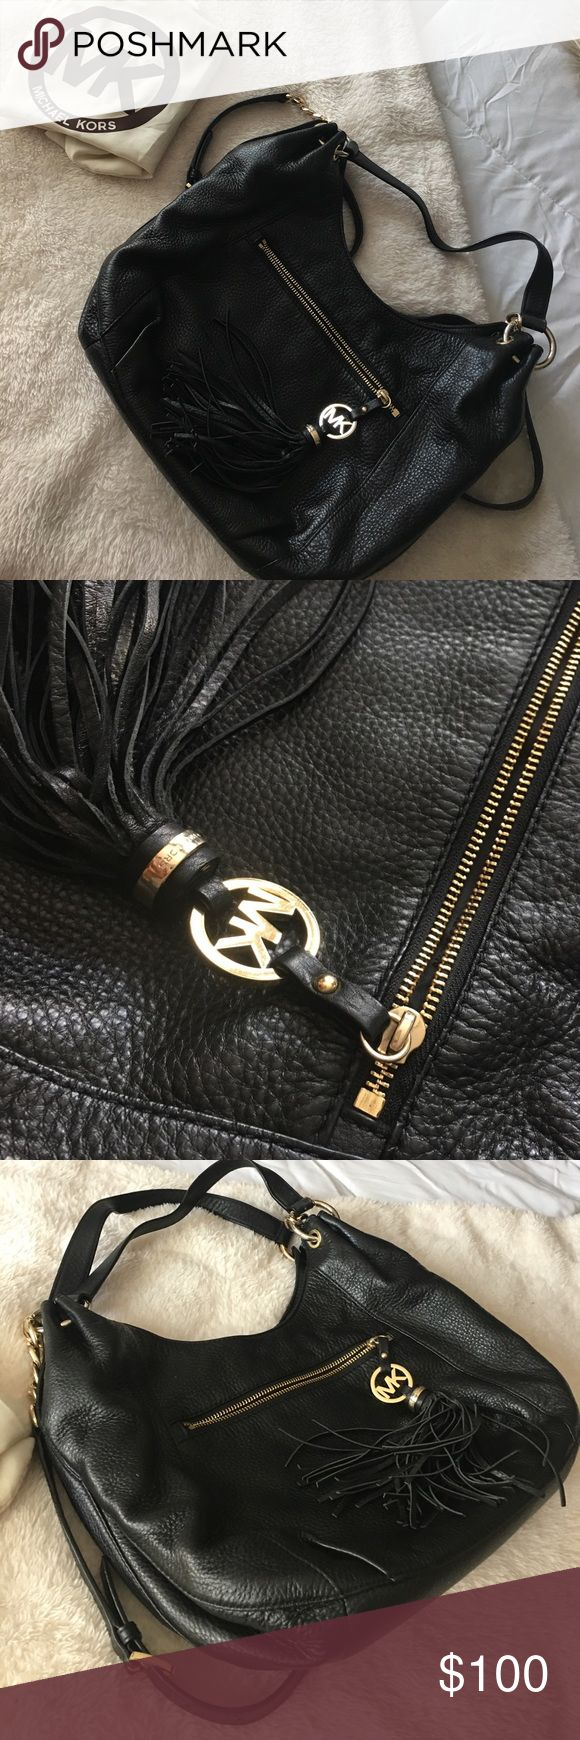 Michael Kors Black Bag This bag is black with a small tassel that includes MK logo. It is in pretty good condition. If there are any specific questions just ask below. The dust bag is included and I'm willing to negotiate the price! Michael Kors Bags